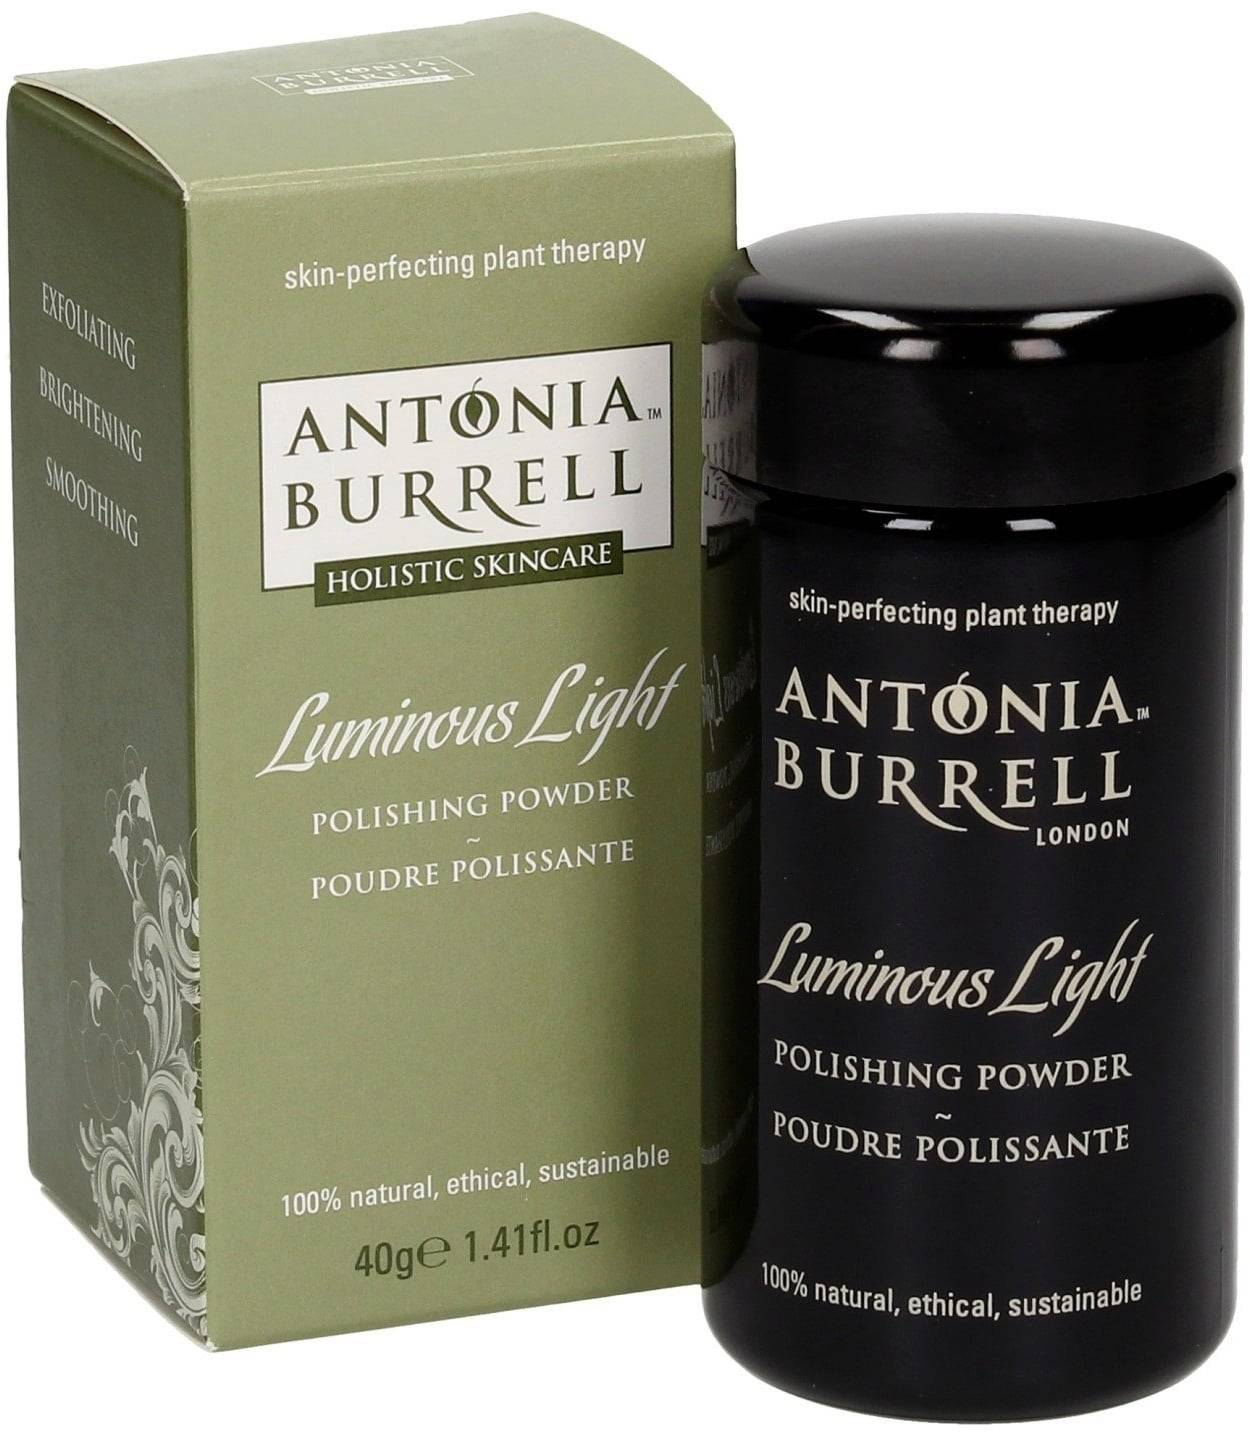 Antonia Burrell Luminous Light Polishing Powder kuorintajauhe - 40 g